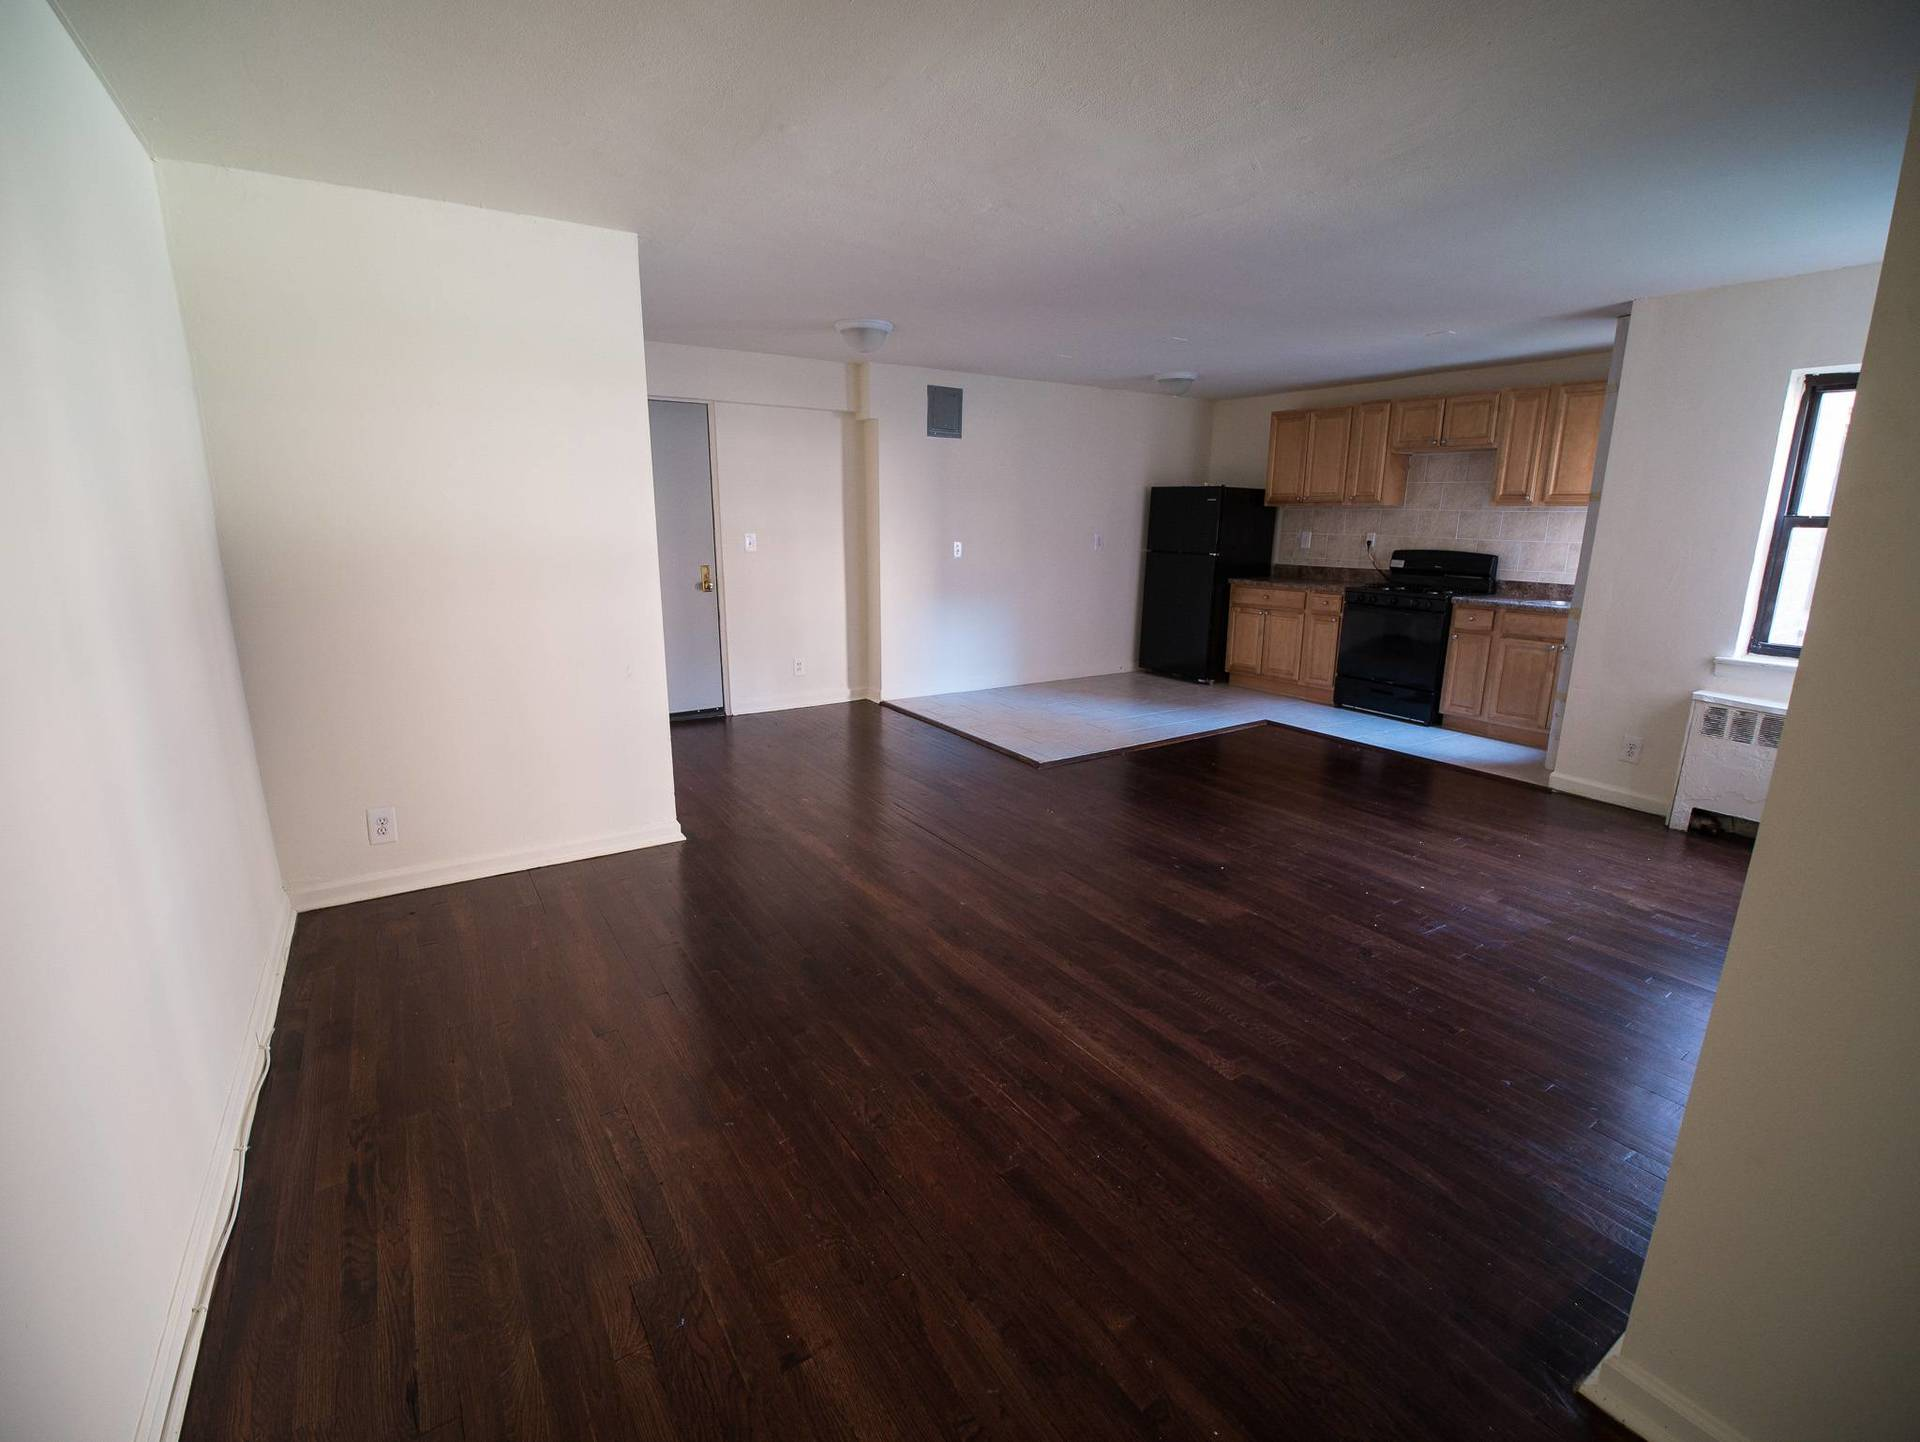 Apartment rental bridgeport ct one bedroom apartments 2 bedroom apartments for rent bridgeport ct